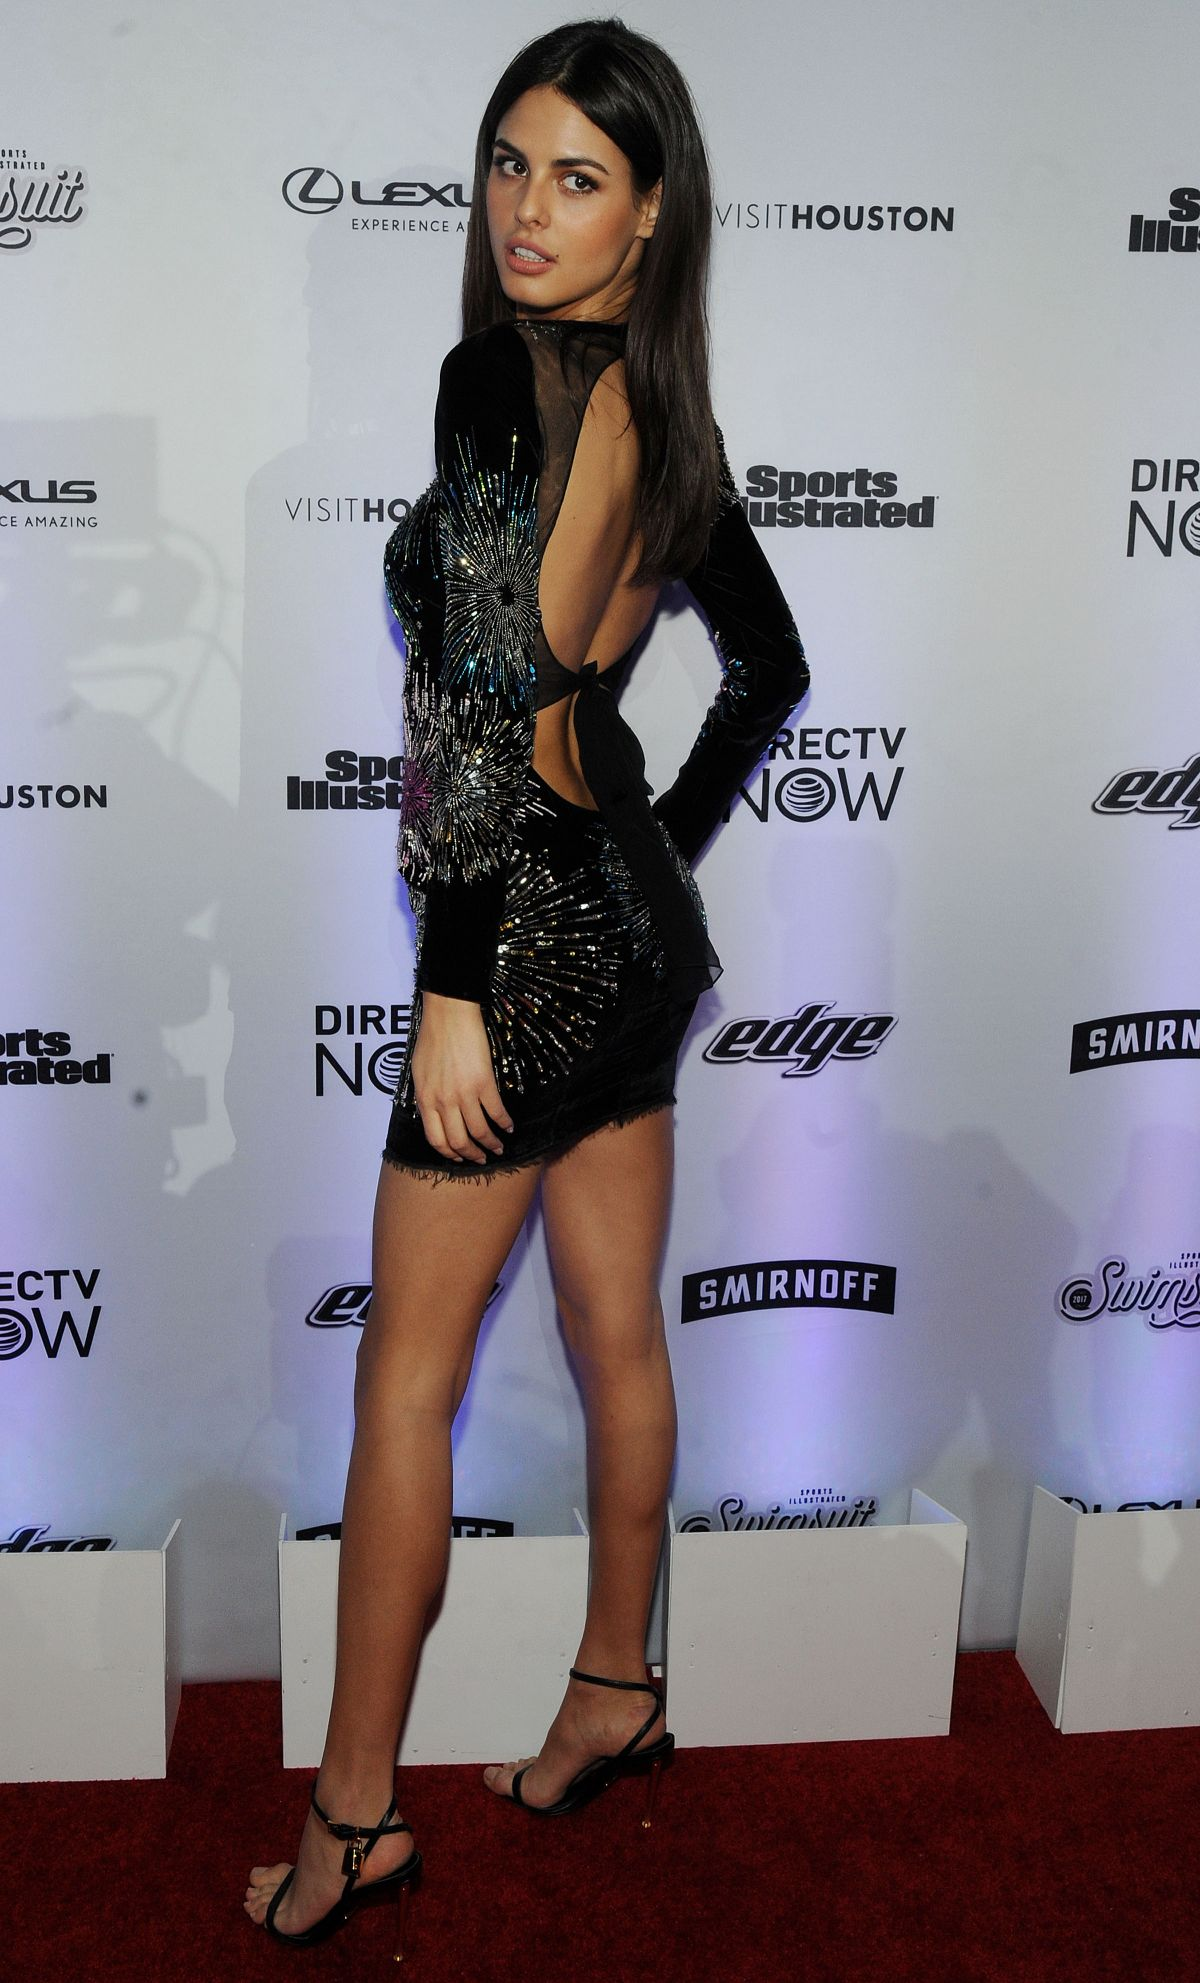 McKenna Berkley At Sports Illustrated Swimsuit Edition launch event in ...